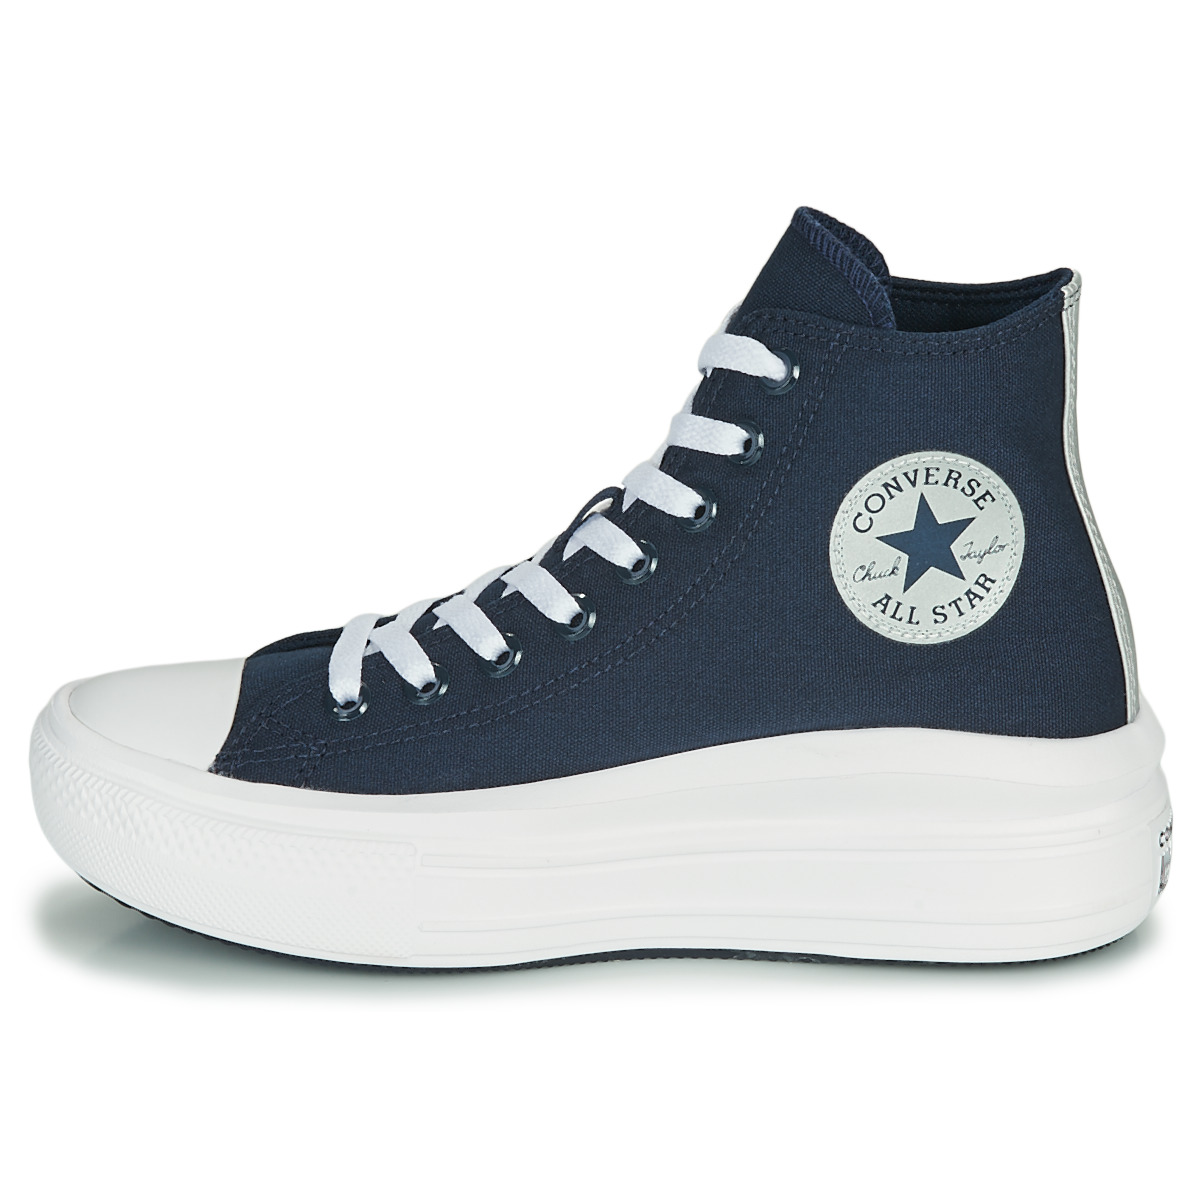 Sneakers alte donna Converse CHUCK TAYLOR ALL STAR MOVE ANODIZED METALS HI Blu